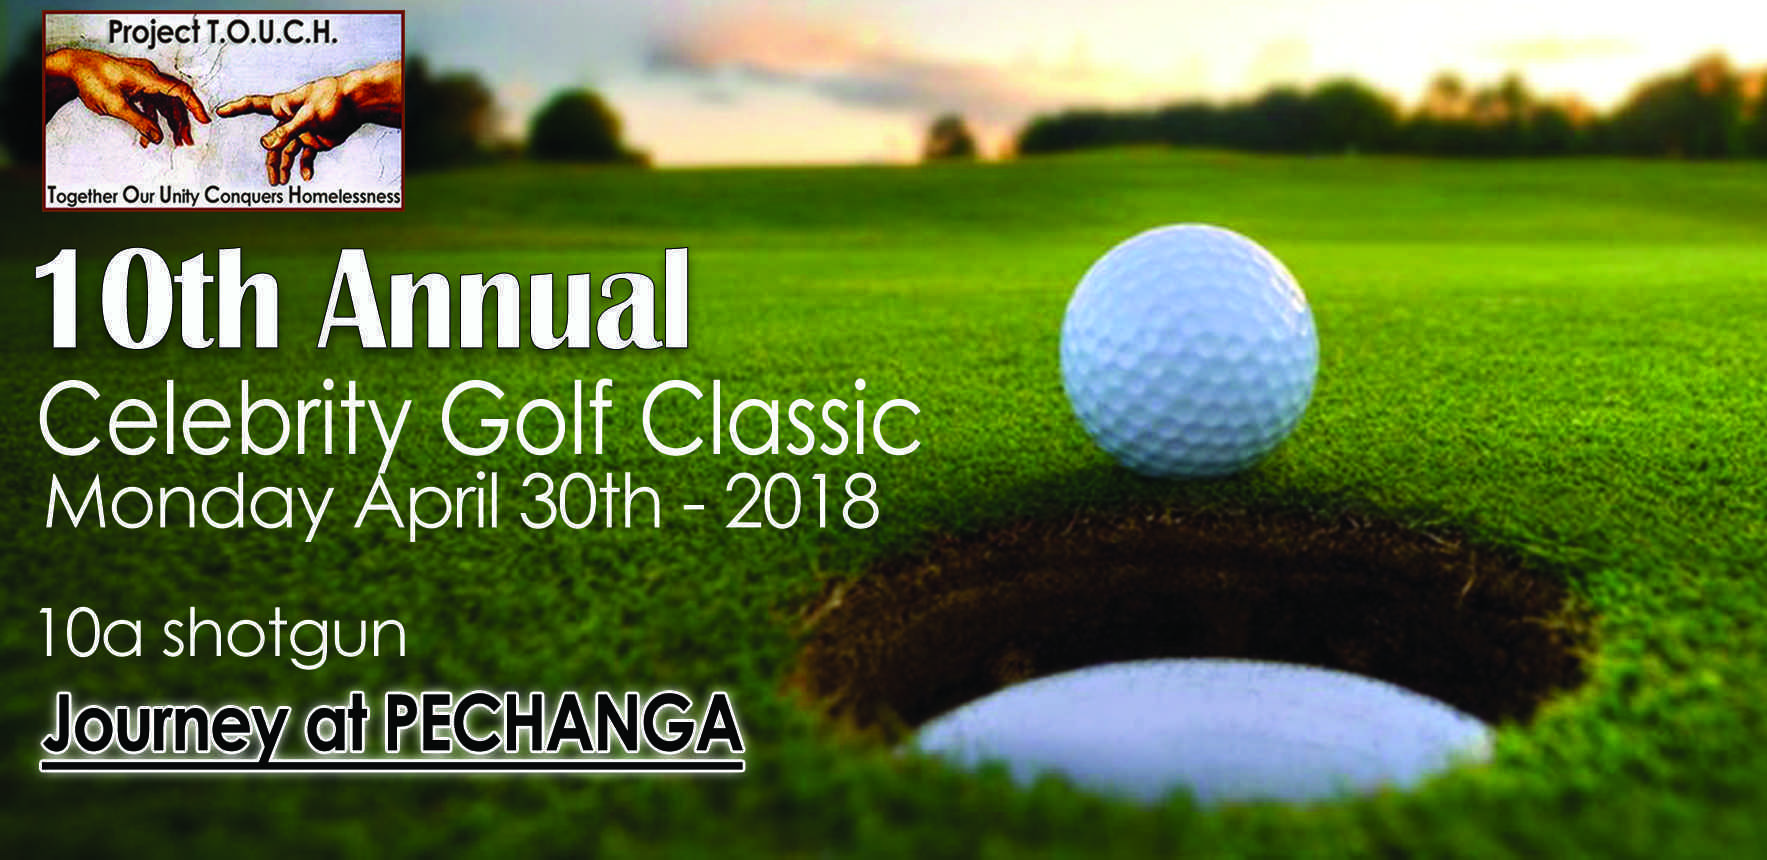 10th Annual Celebrity Golf Classic for Project T.O.U.C.H. image